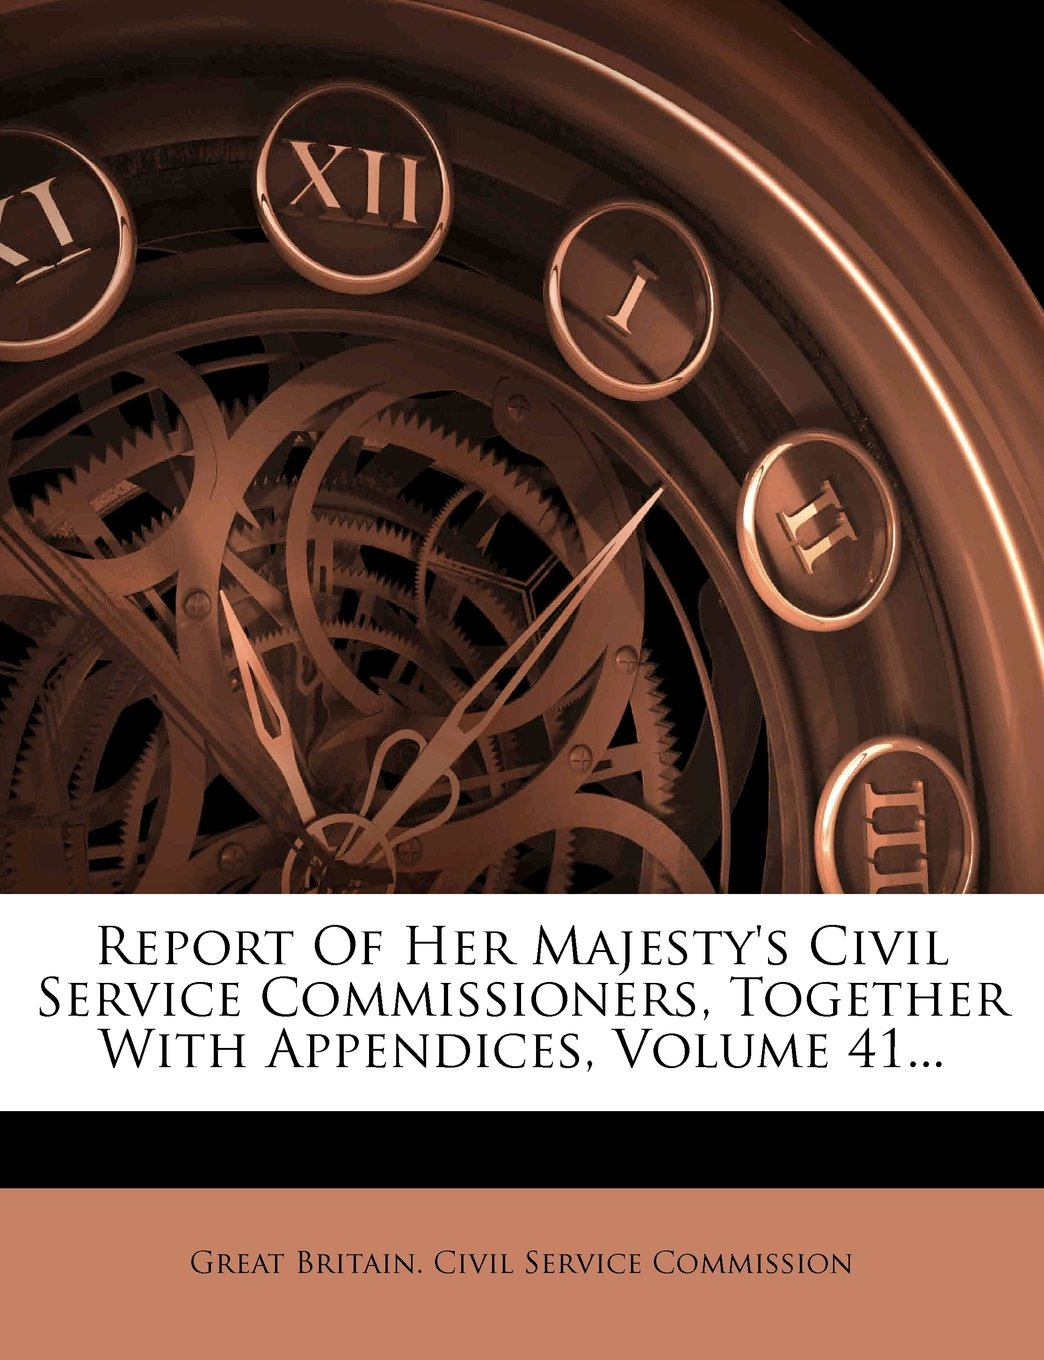 Report Of Her Majesty's Civil Service Commissioners, Together With Appendices, Volume 41... ebook